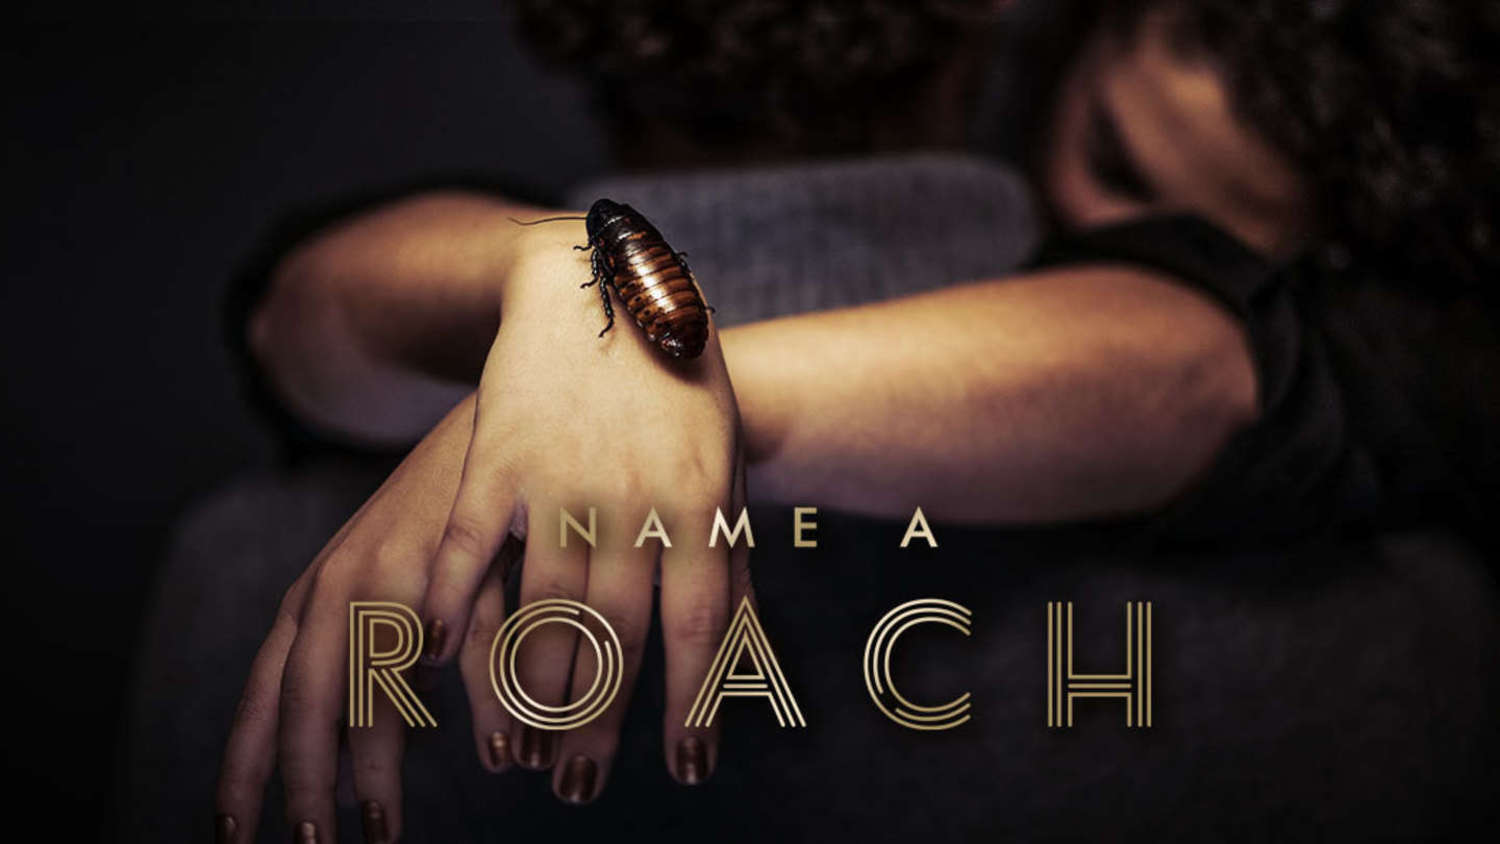 """Bronx Zoo's """"Name a Roach"""" Event"""